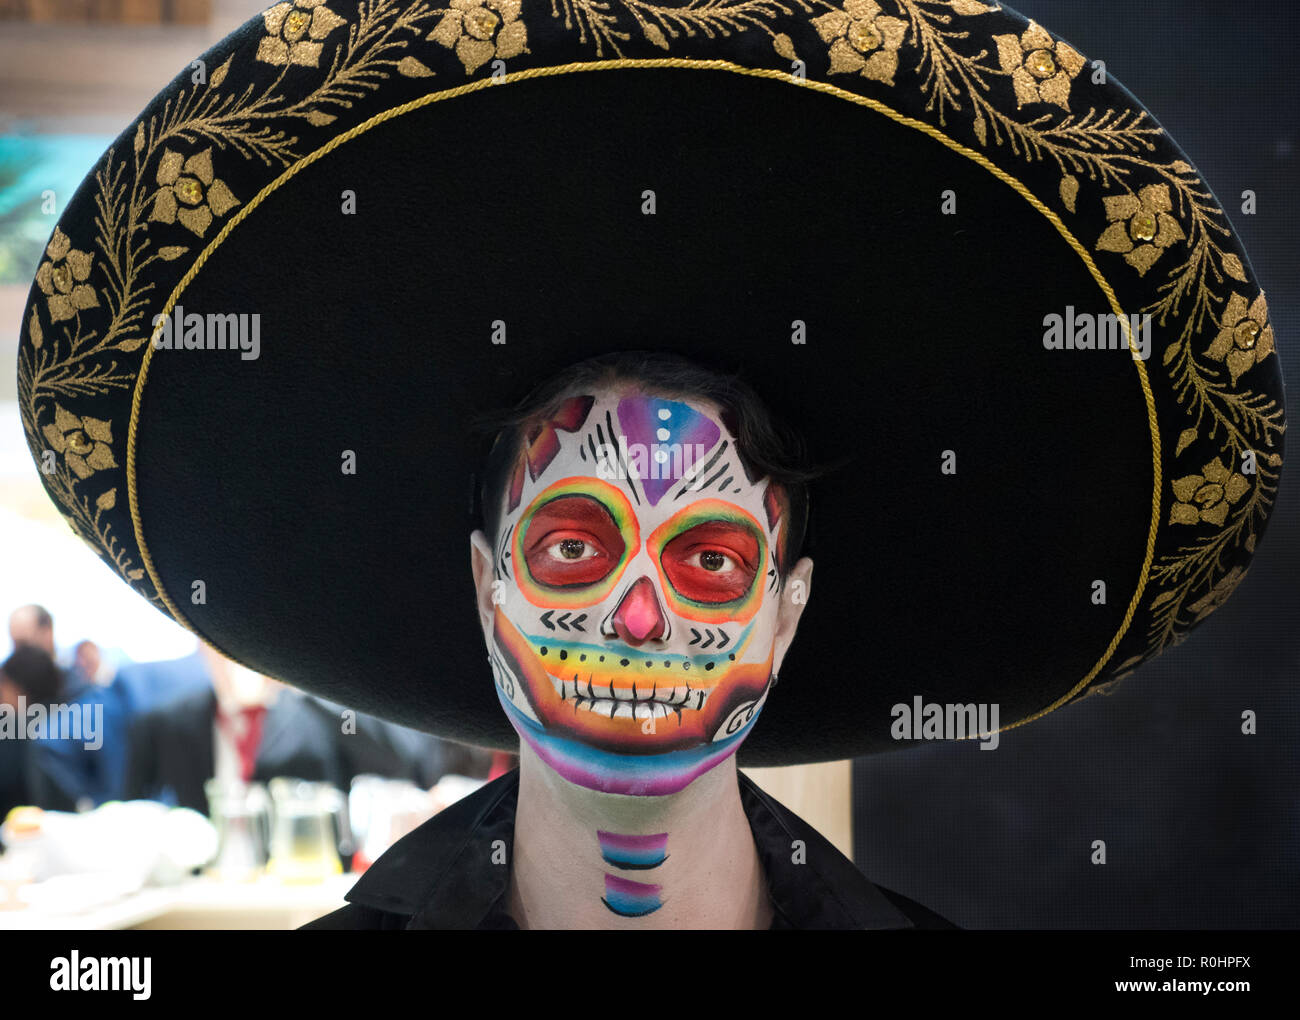 Londres, Royaume-Uni. 5 Nov 2018. Mexican homme habillé pour le 'Jour des Morts au Mexique sur le stand au salon WTM à Excel Centre London UK LE 05/11/2018 Credit : Cabanel/Alamy Live News Banque D'Images